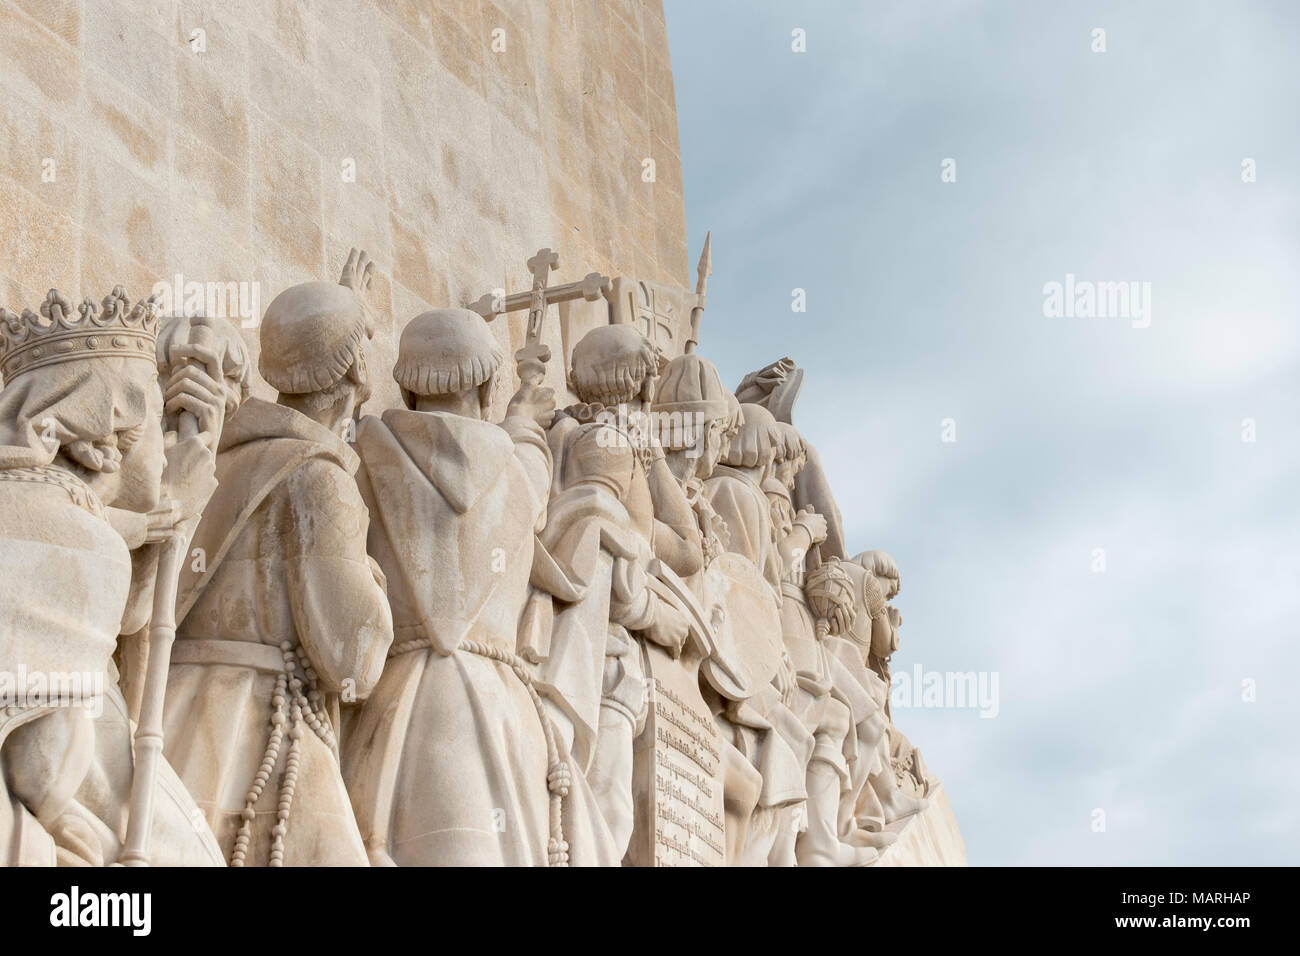 Monument to the Discoveries, Belem, Lisbon, Portugal - Stock Image